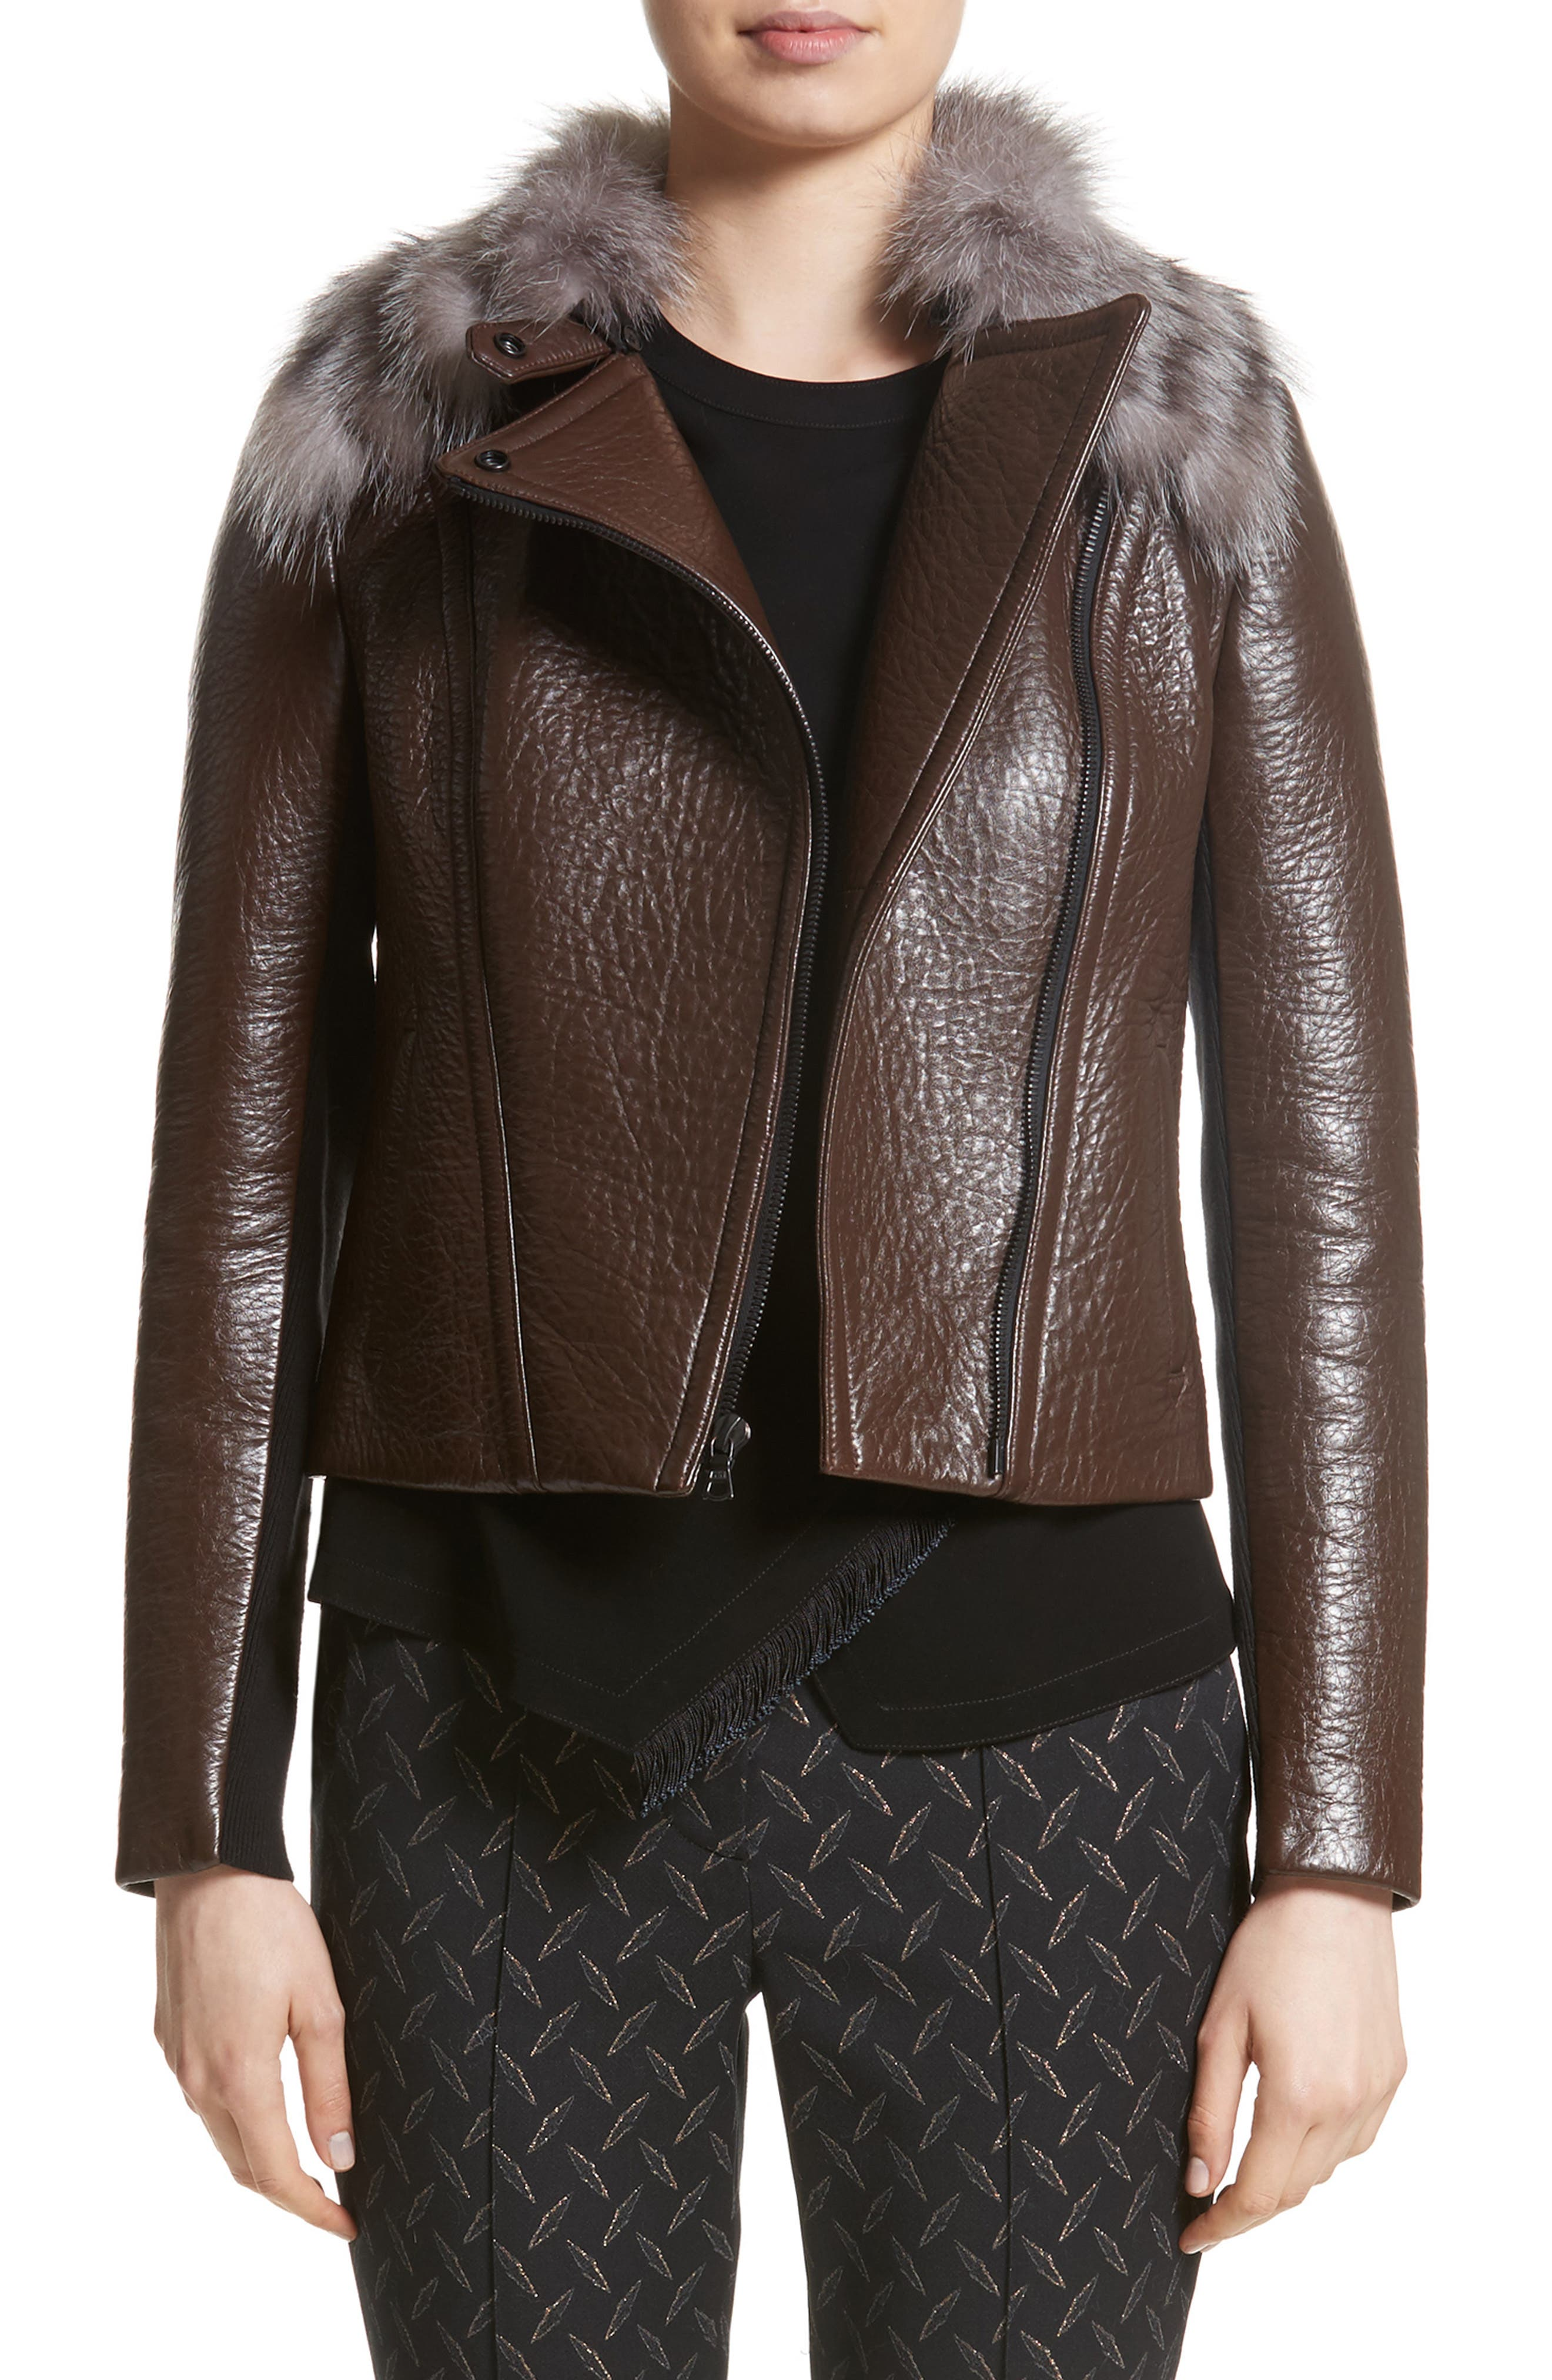 Bonded Moto Leather Jacket with Removable Genuine Fox Fur Collar,                             Main thumbnail 1, color,                             219